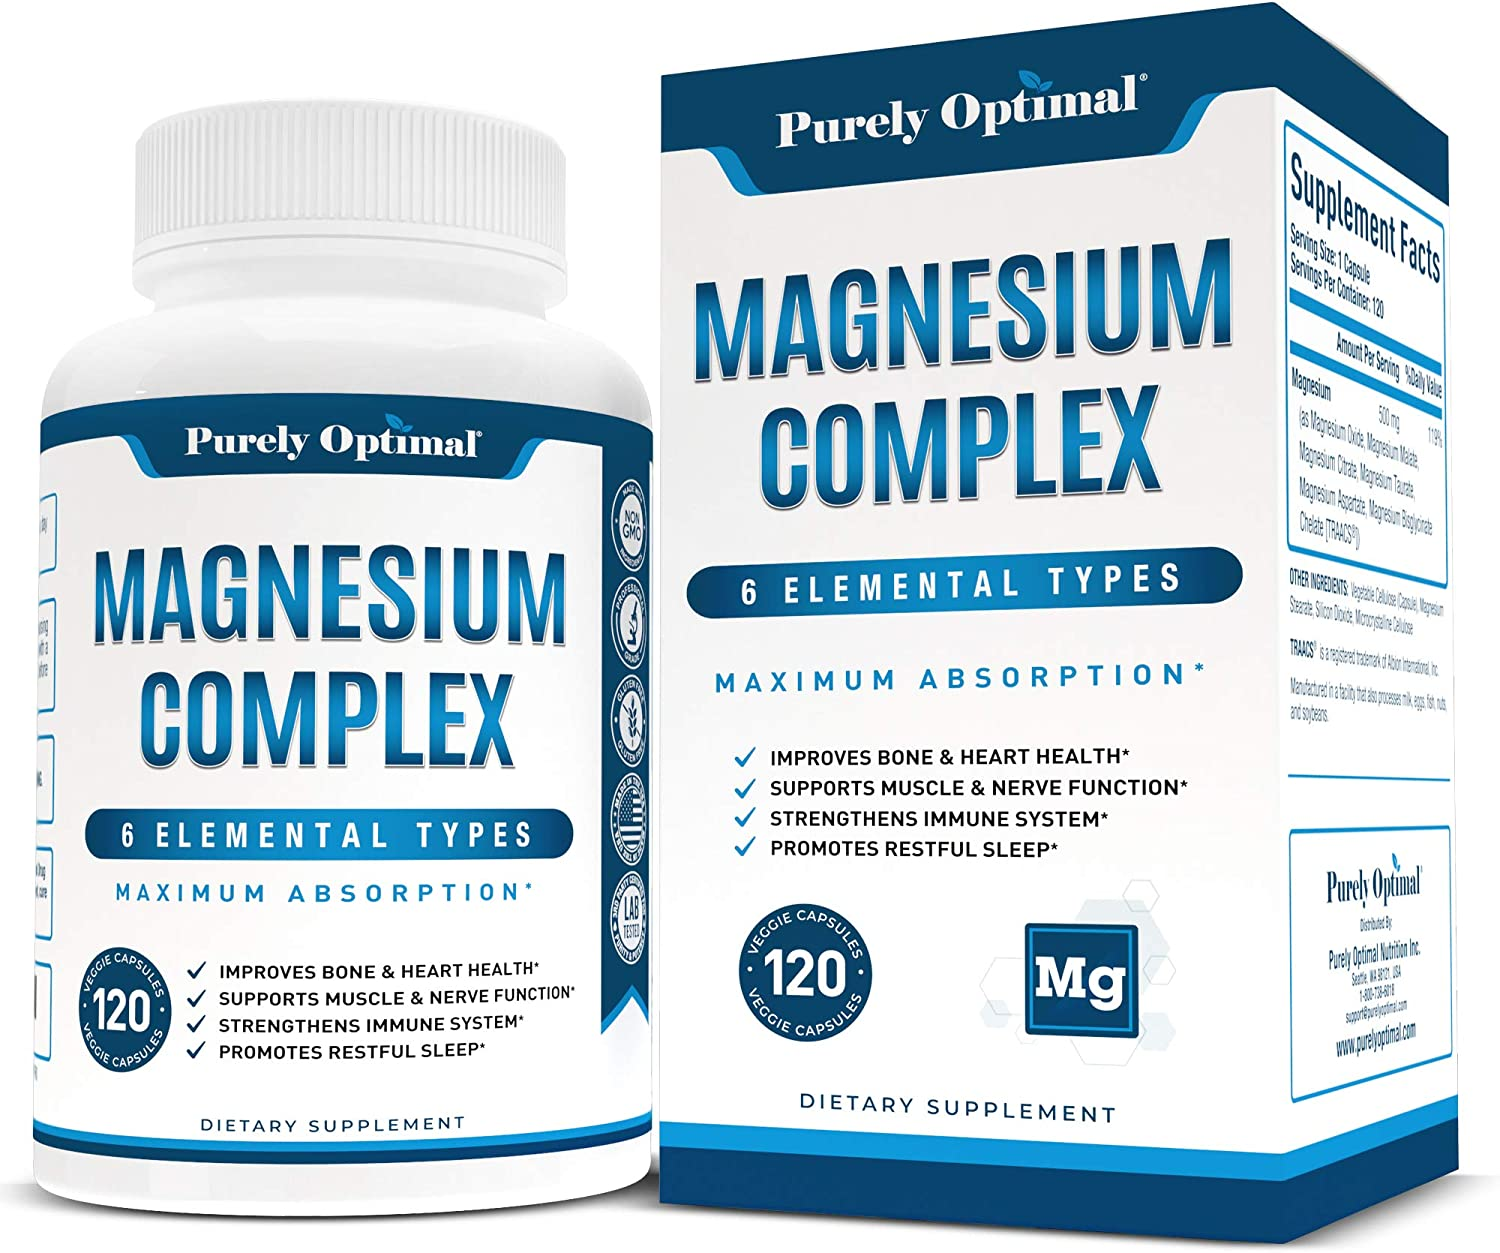 Premium Magnesium Complex - Magnesium Citrate, Malate, Taurate, Oxide, Aspartate, Bisglycinate Chelate TRAACS - Max Absorption Magnesium Supplement for Sleep, Leg Cramps, Muscle Relaxation - 120 caps…: Health & Personal Care